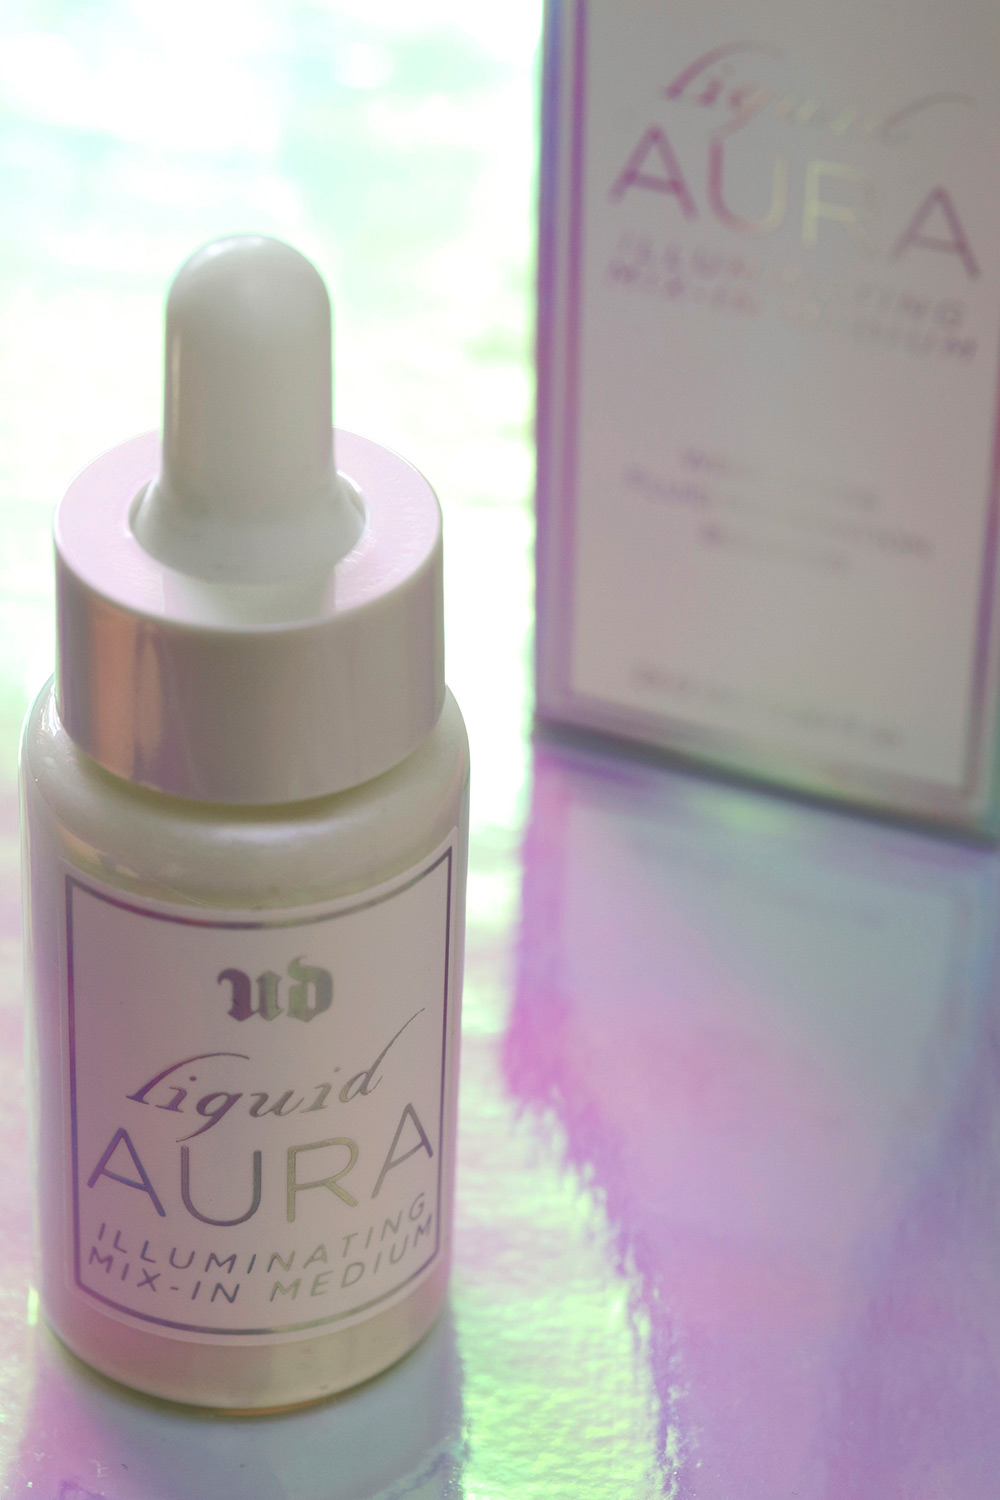 urban decay liquid aura